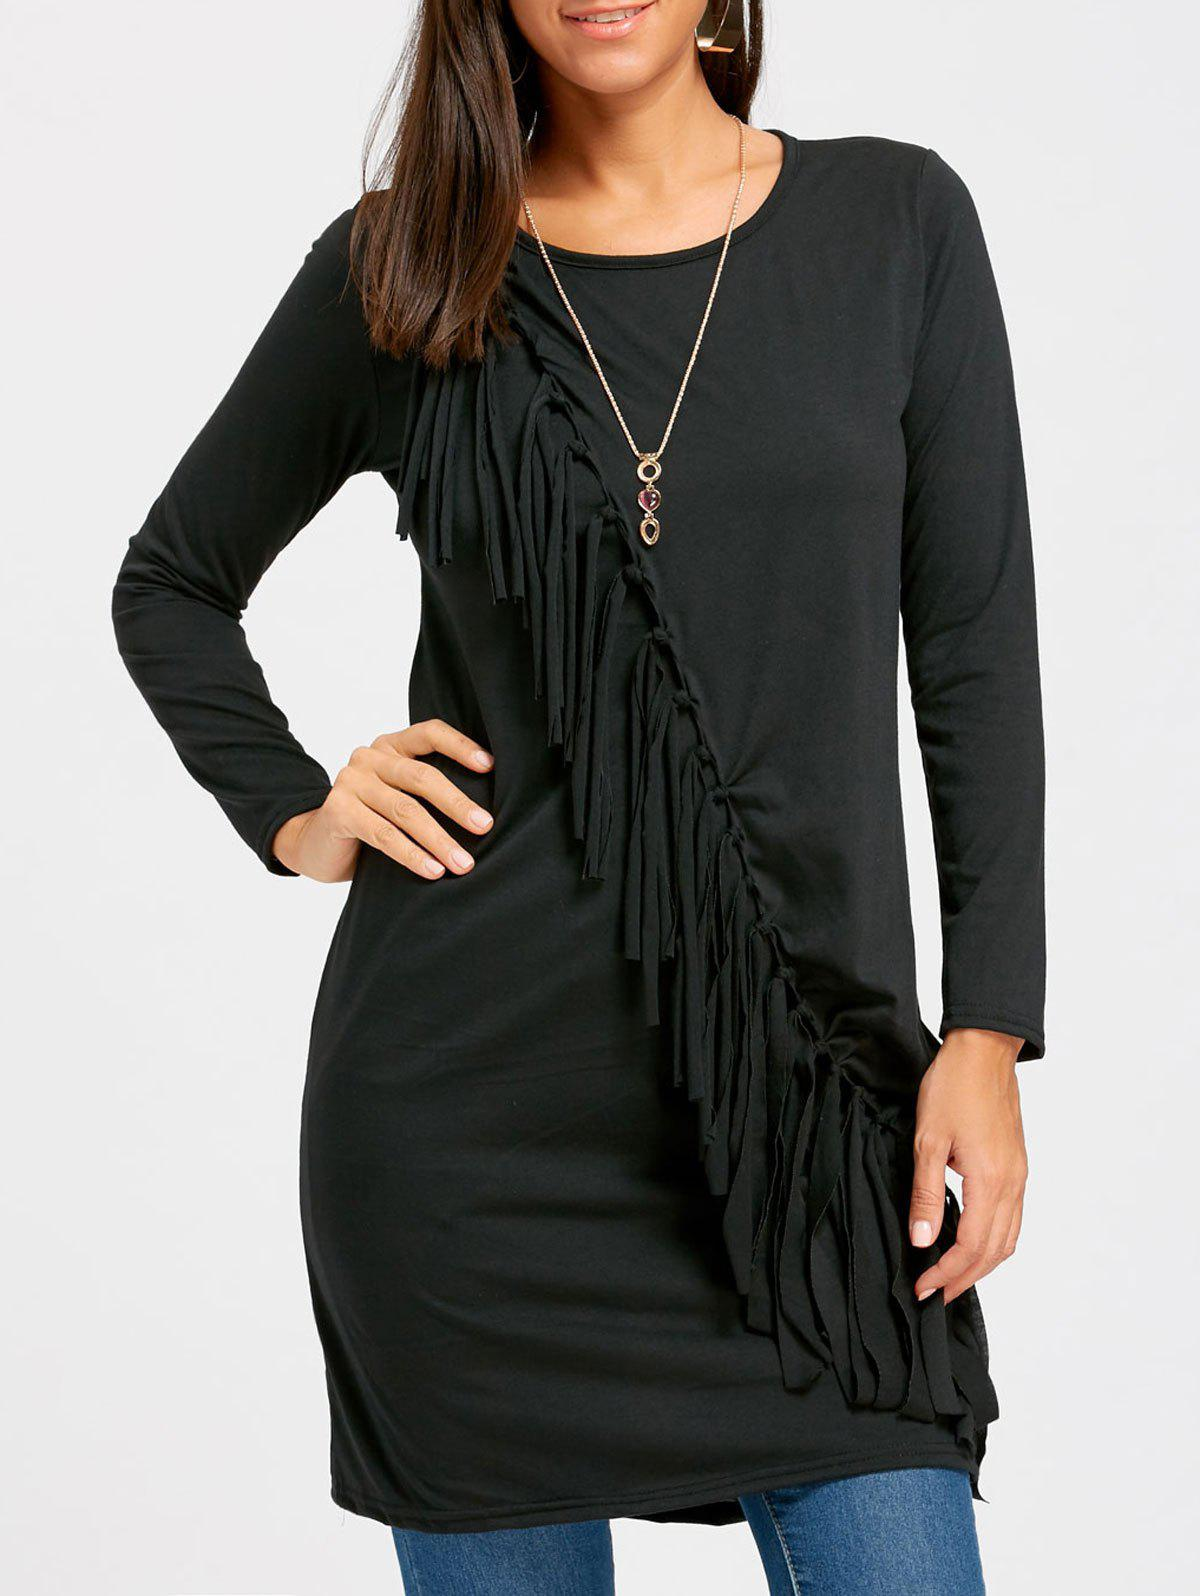 Tassel Overlap Front Long Sweater 232097303